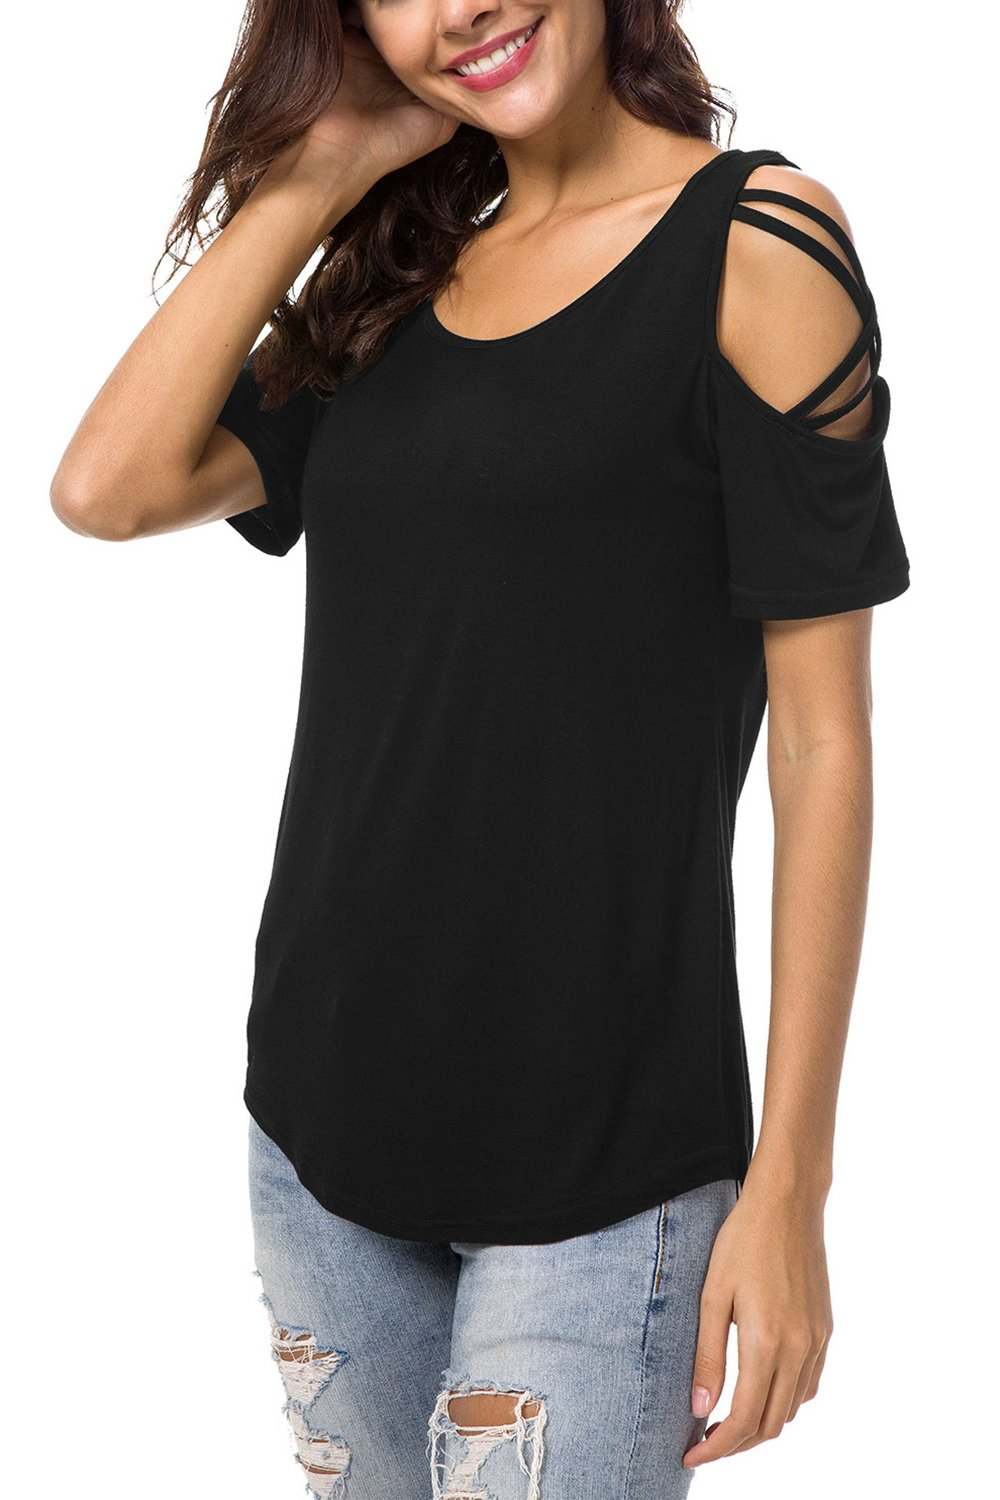 NICIAS Womens Summer Round Neck Cold Shoulder Tees Slim Tunic Tops Casual Short Sleeve Strappy T-Shirt Blouse Black M